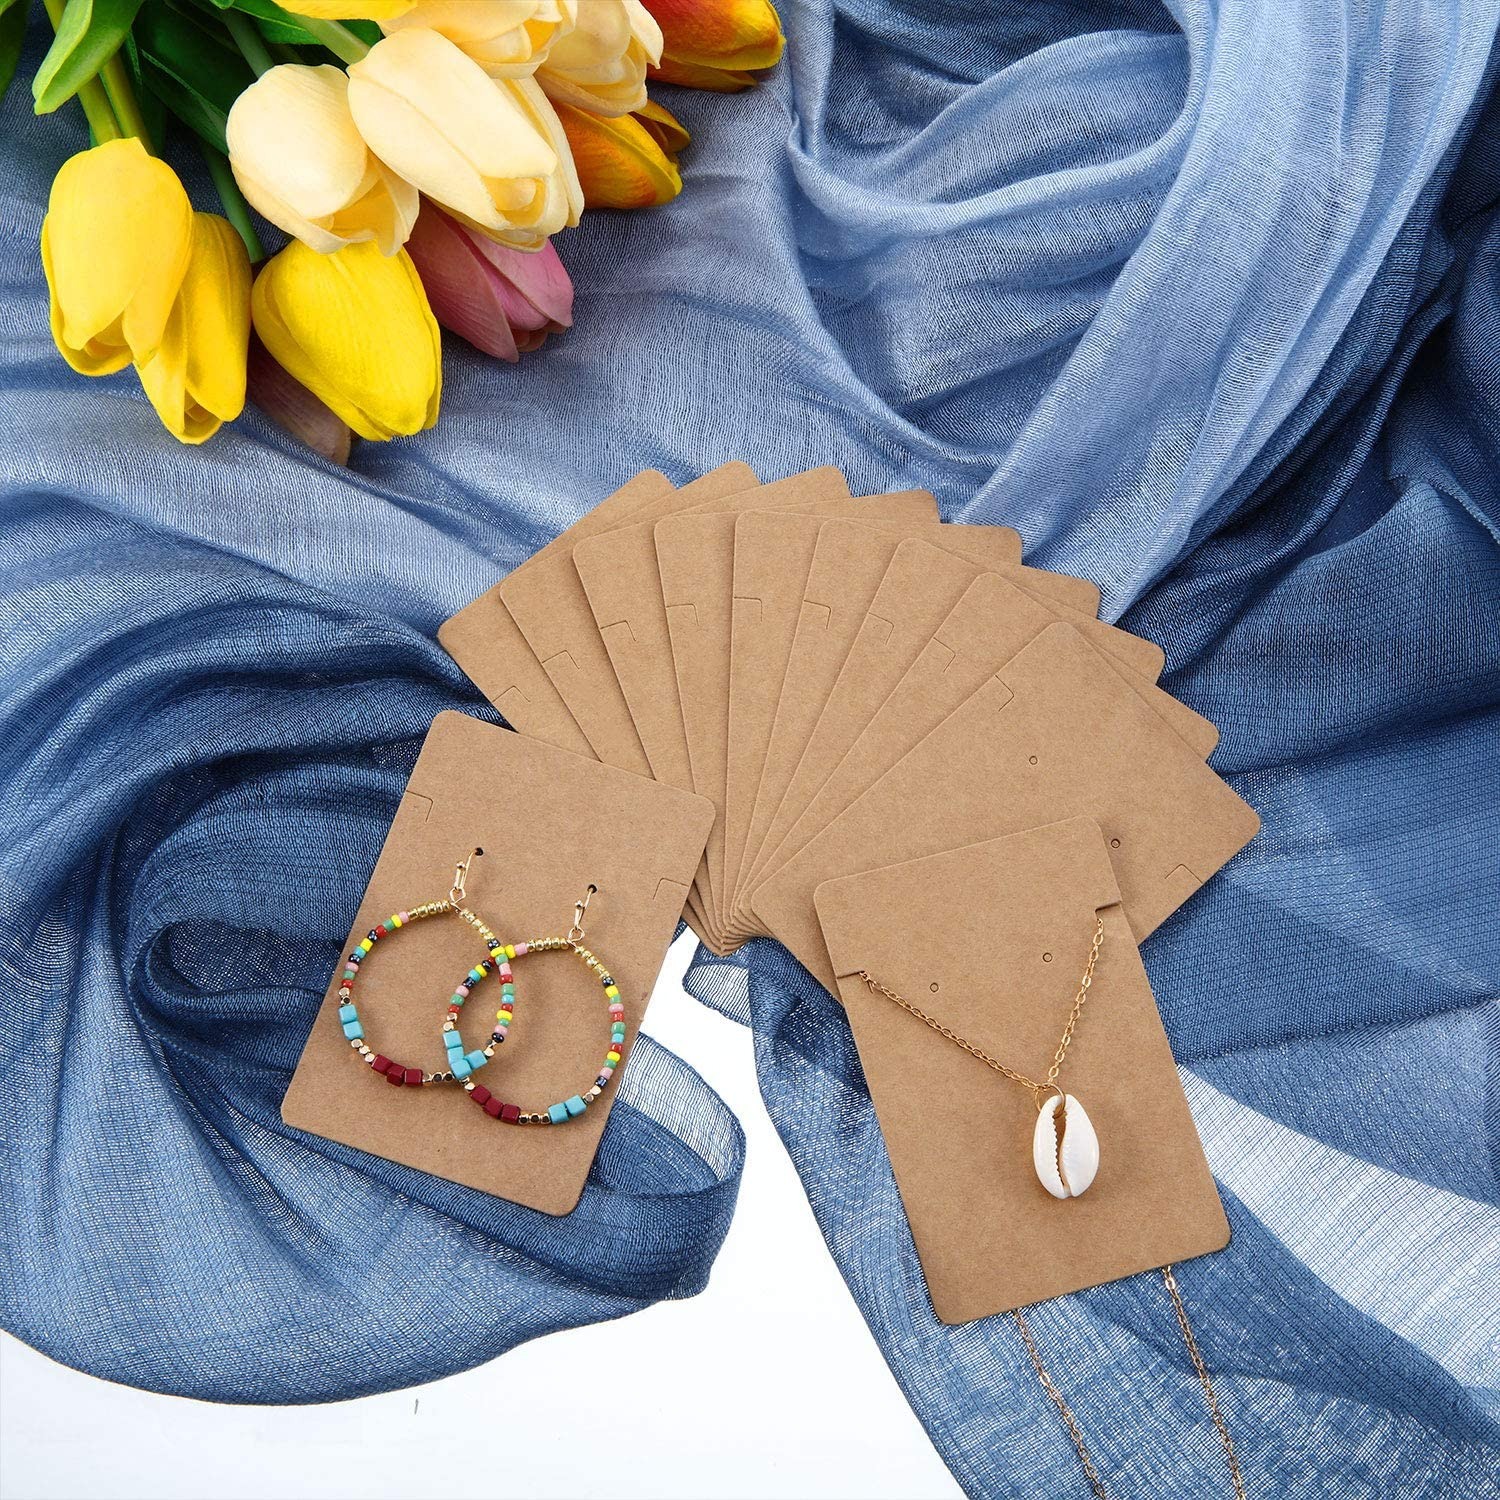 300 Set Necklace Earring Display Cards with 300 Pieces Self-Sealing Bags for Stud Earrings Dangle Earrings Pendant Earrings Necklace Chain (Kraft)